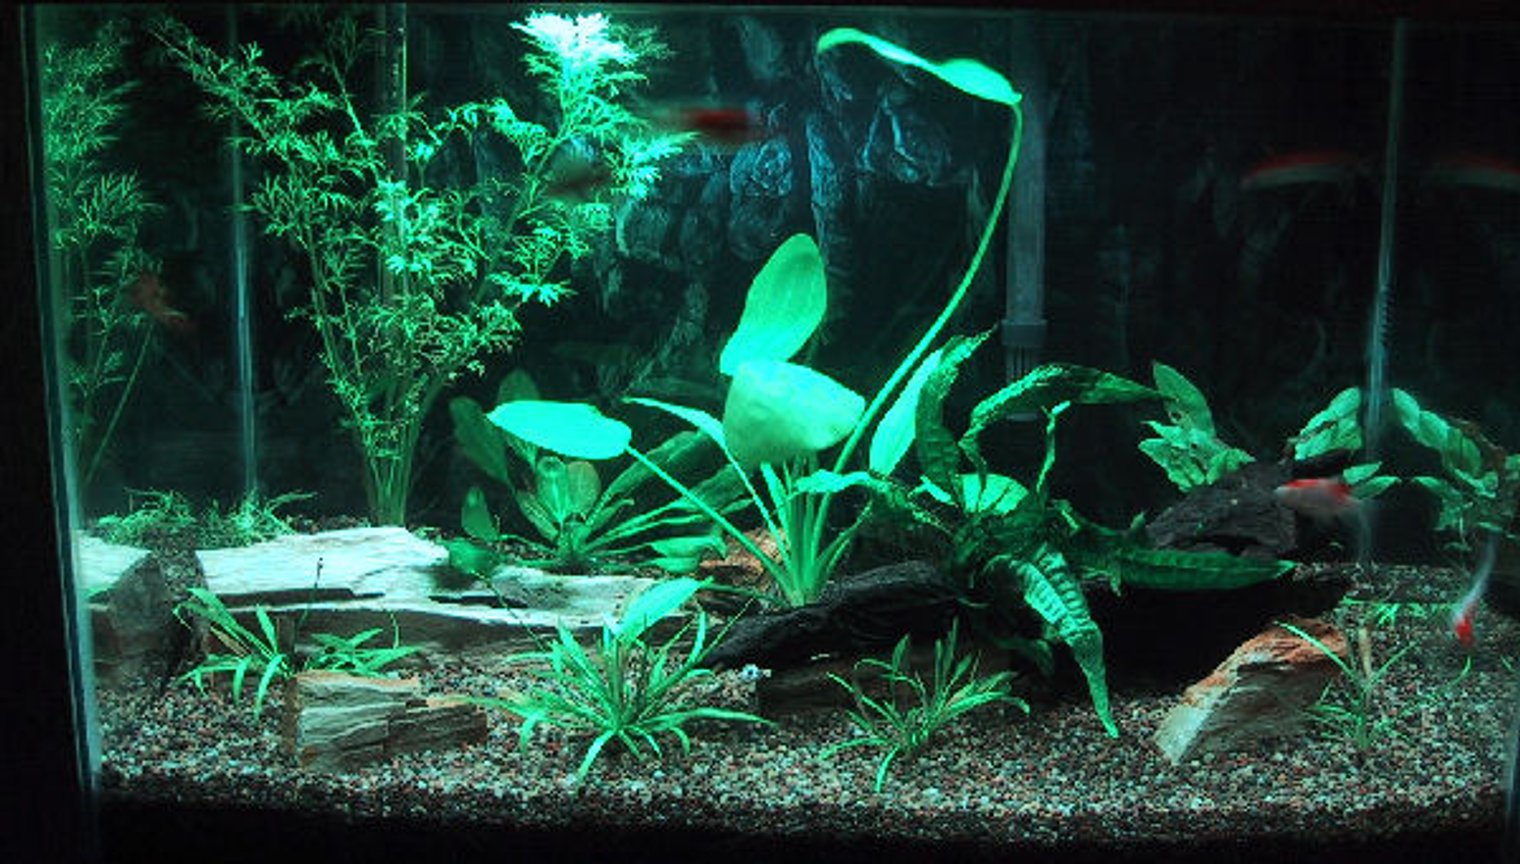 20 gallons planted tank (mostly live plants and fish) - 02-28-2009 - Updated picture with more plants and 6 goldfish being used to speed up cycling process.